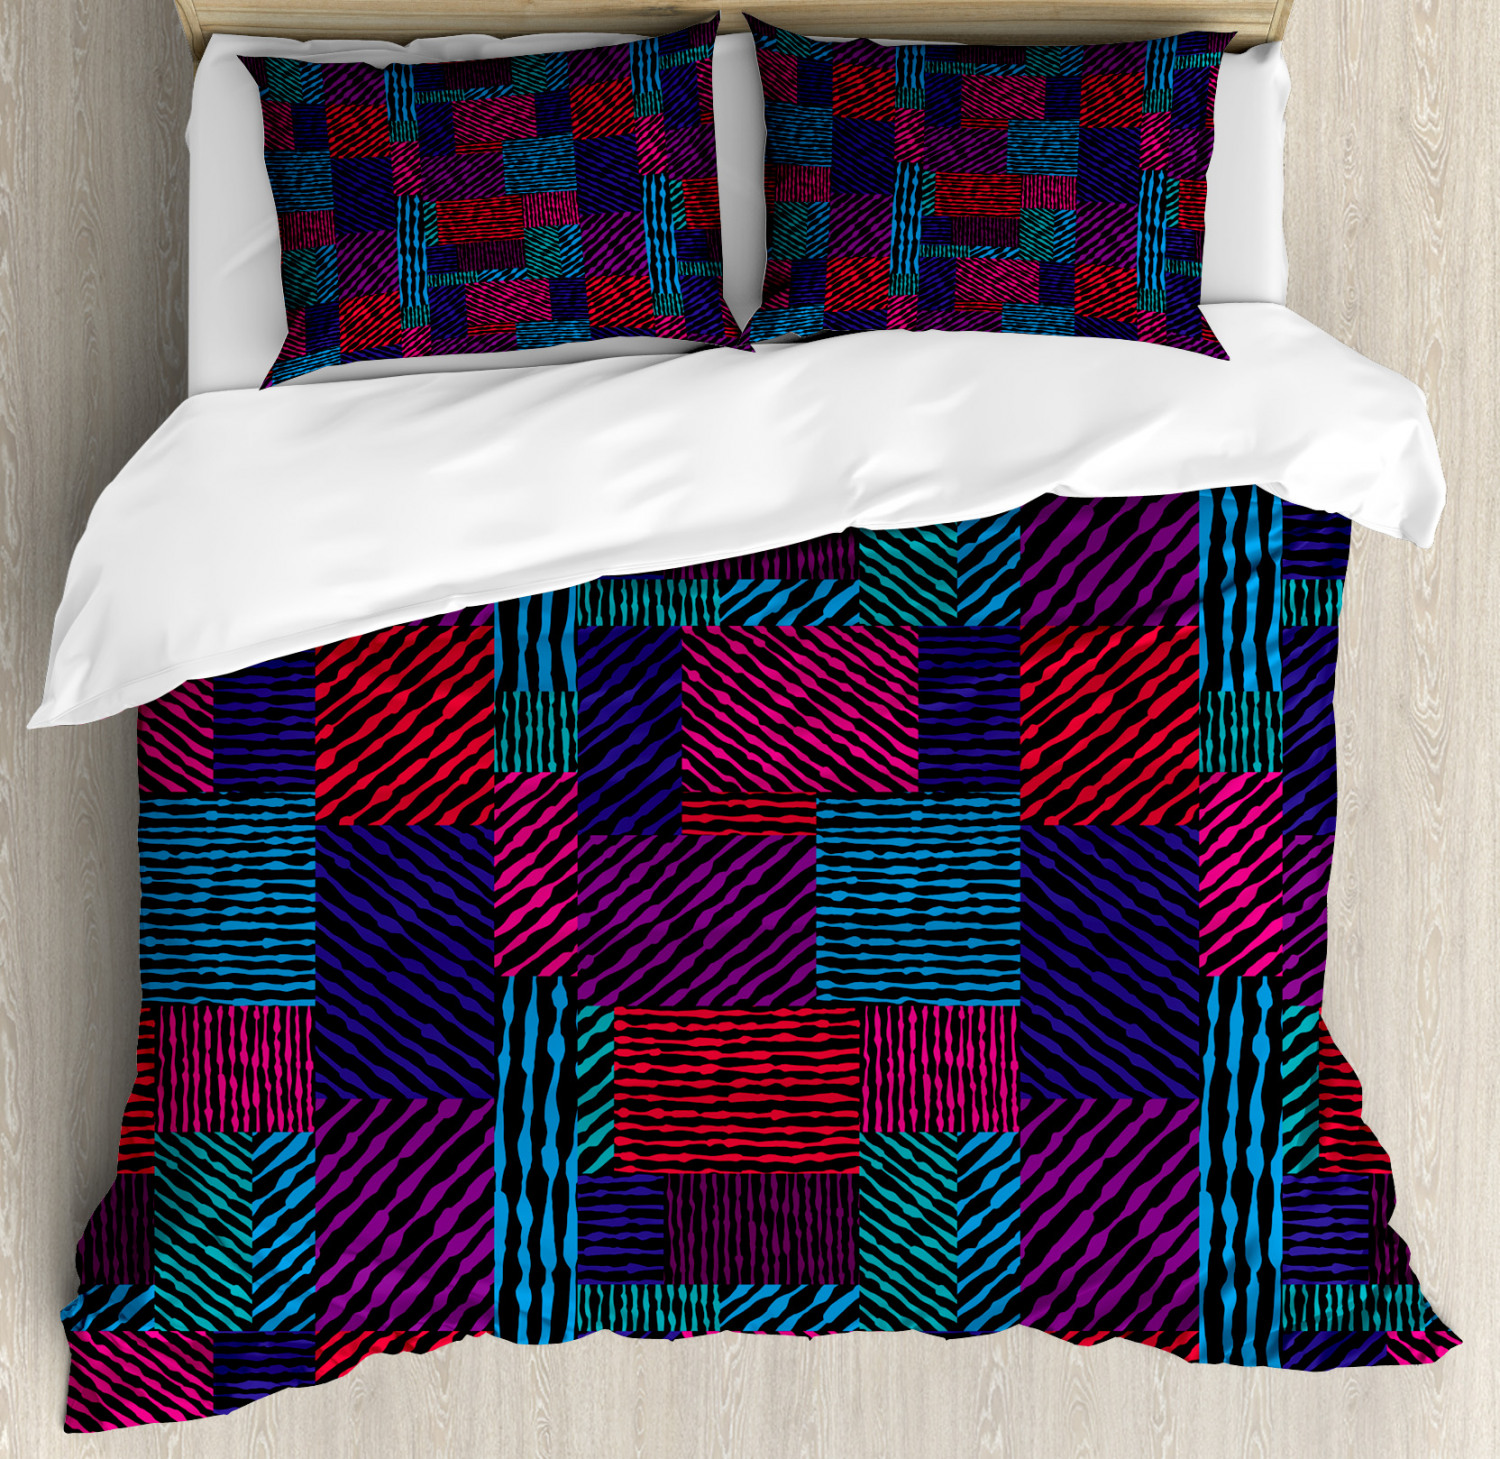 Abstract Duvet Cover Set with Pillow Shams Trippy Modern Wavy Print